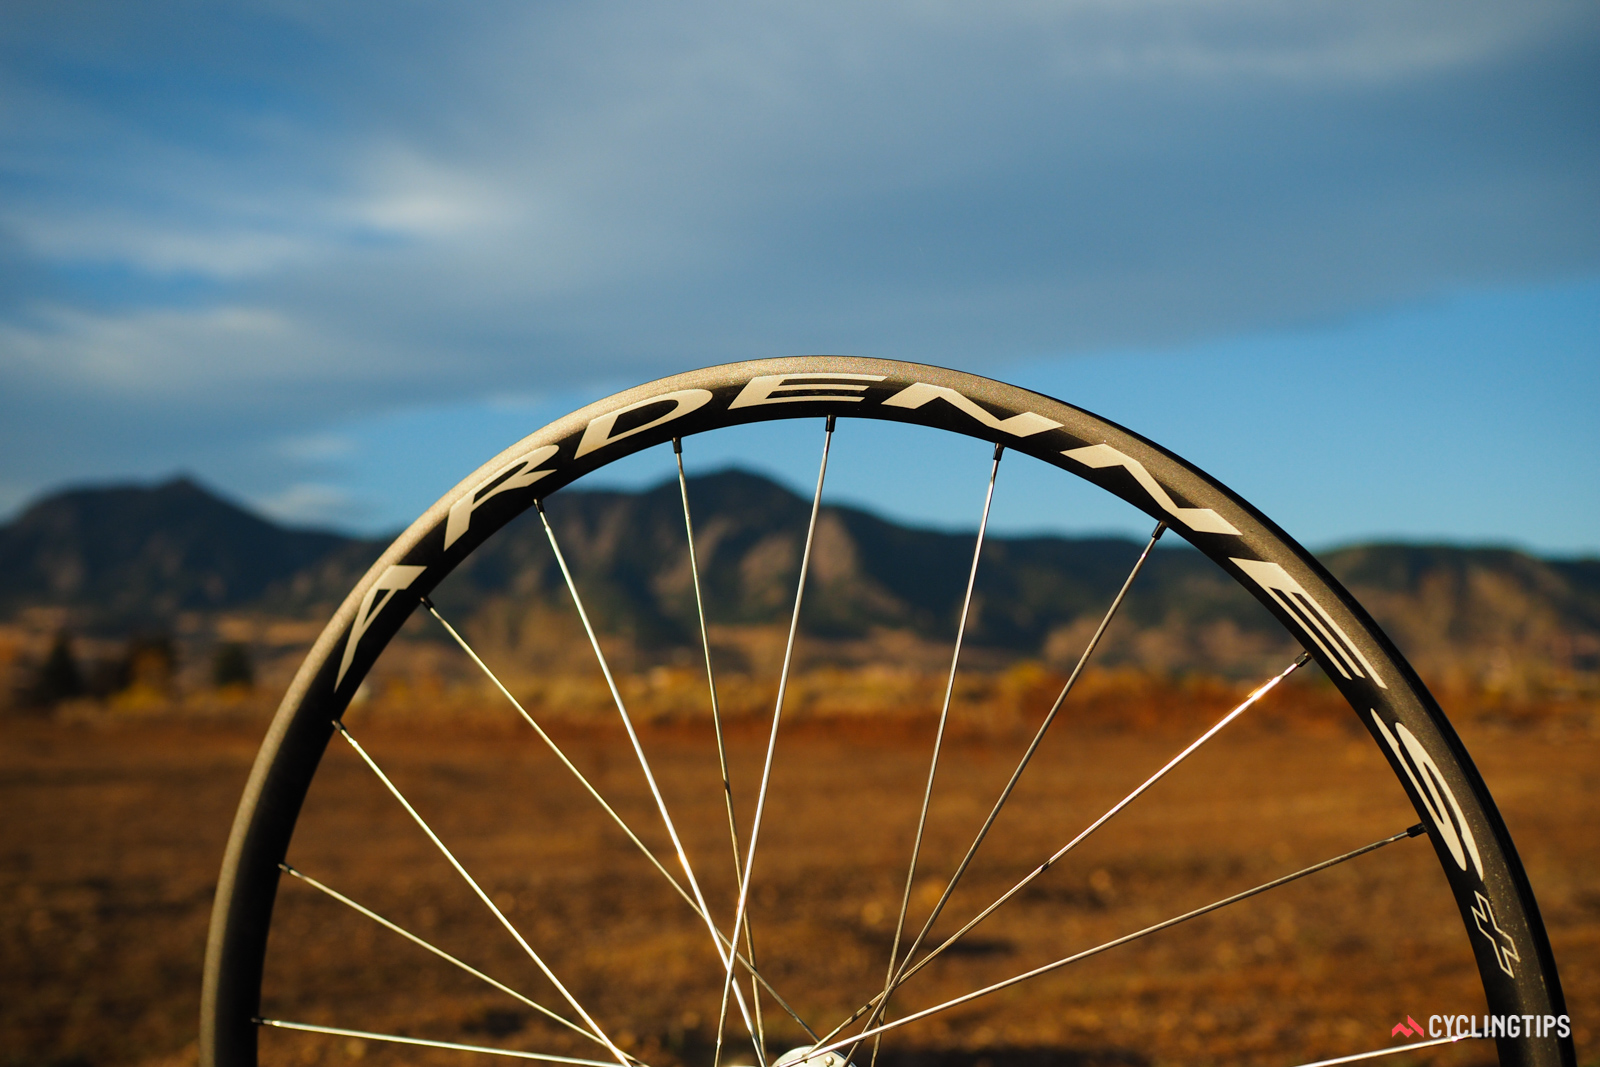 HED wasn't first to introduce a road wheelset with a wide tire bed; American Classic beat it to the punch by a few years with the original Hurricane in 2005. Riders were more willing to accept the idea of a wider wheel when the original Ardennes was launched in 2008, though, so HED is often credited with sparking the movement on a larger scale.